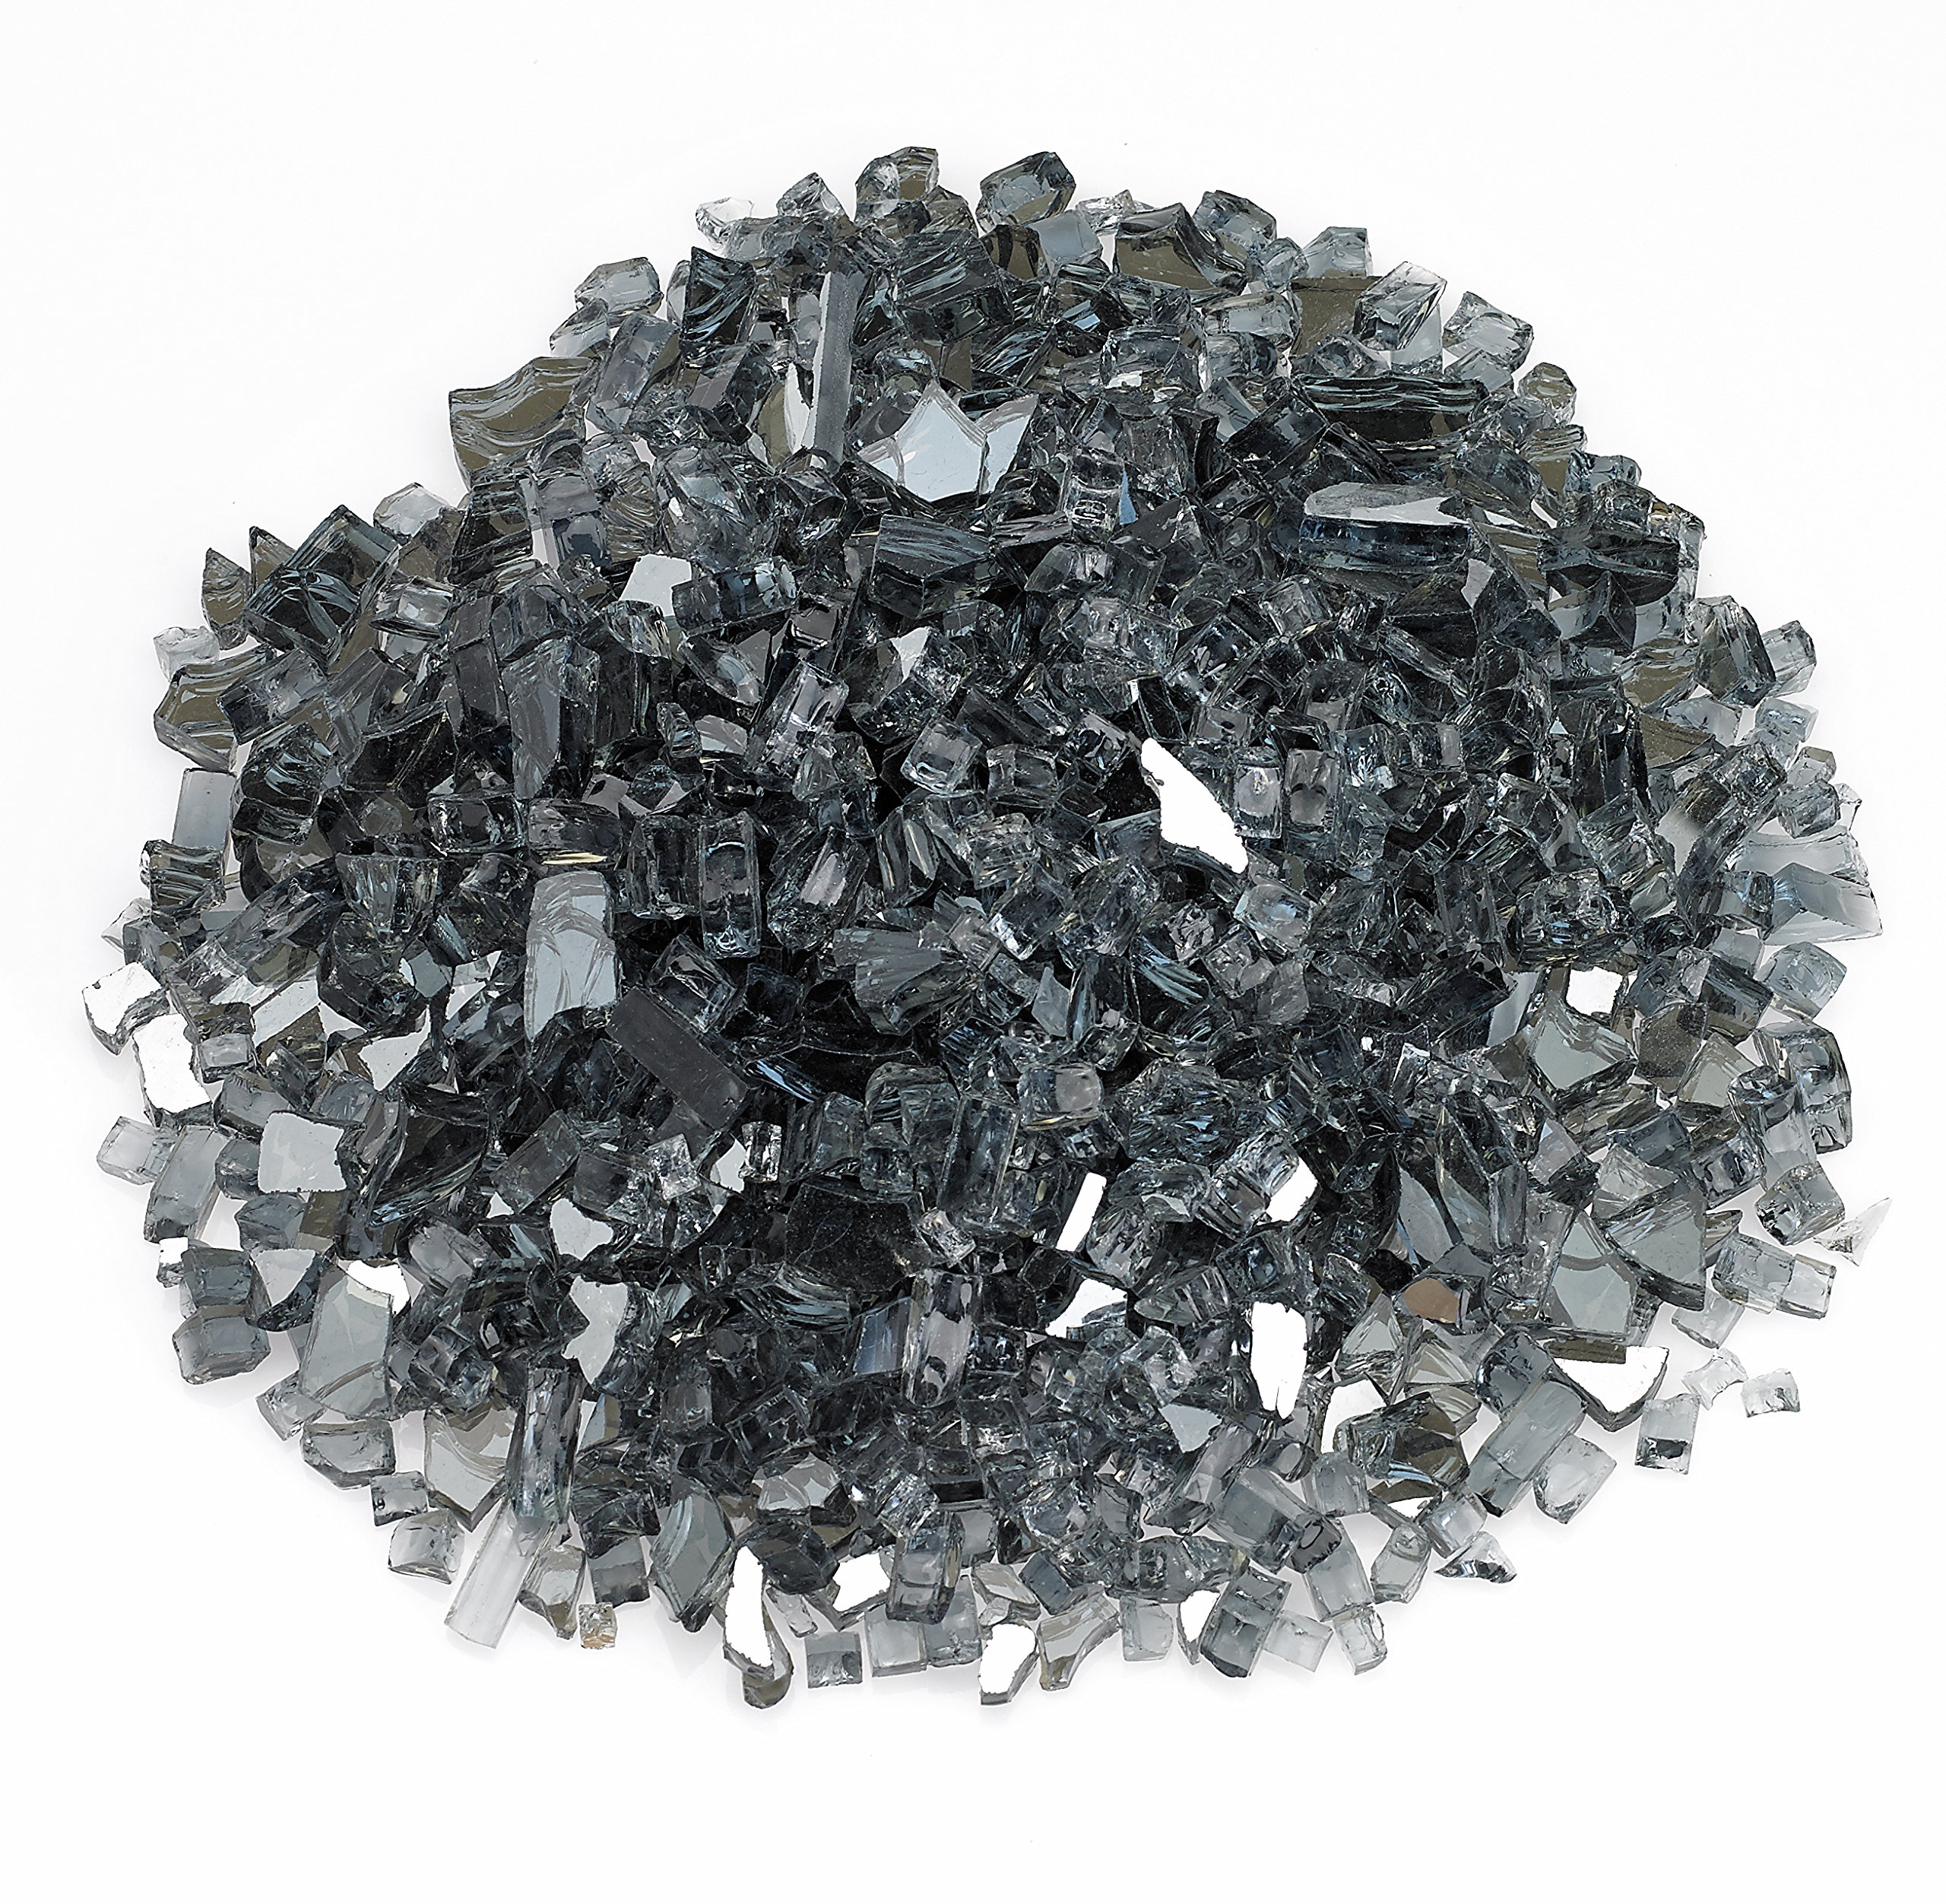 American Fireglass 10-Pound Reflective Fire Glass with Fireplace Glass and Fire Pit Glass, 1/4-Inch, Gray